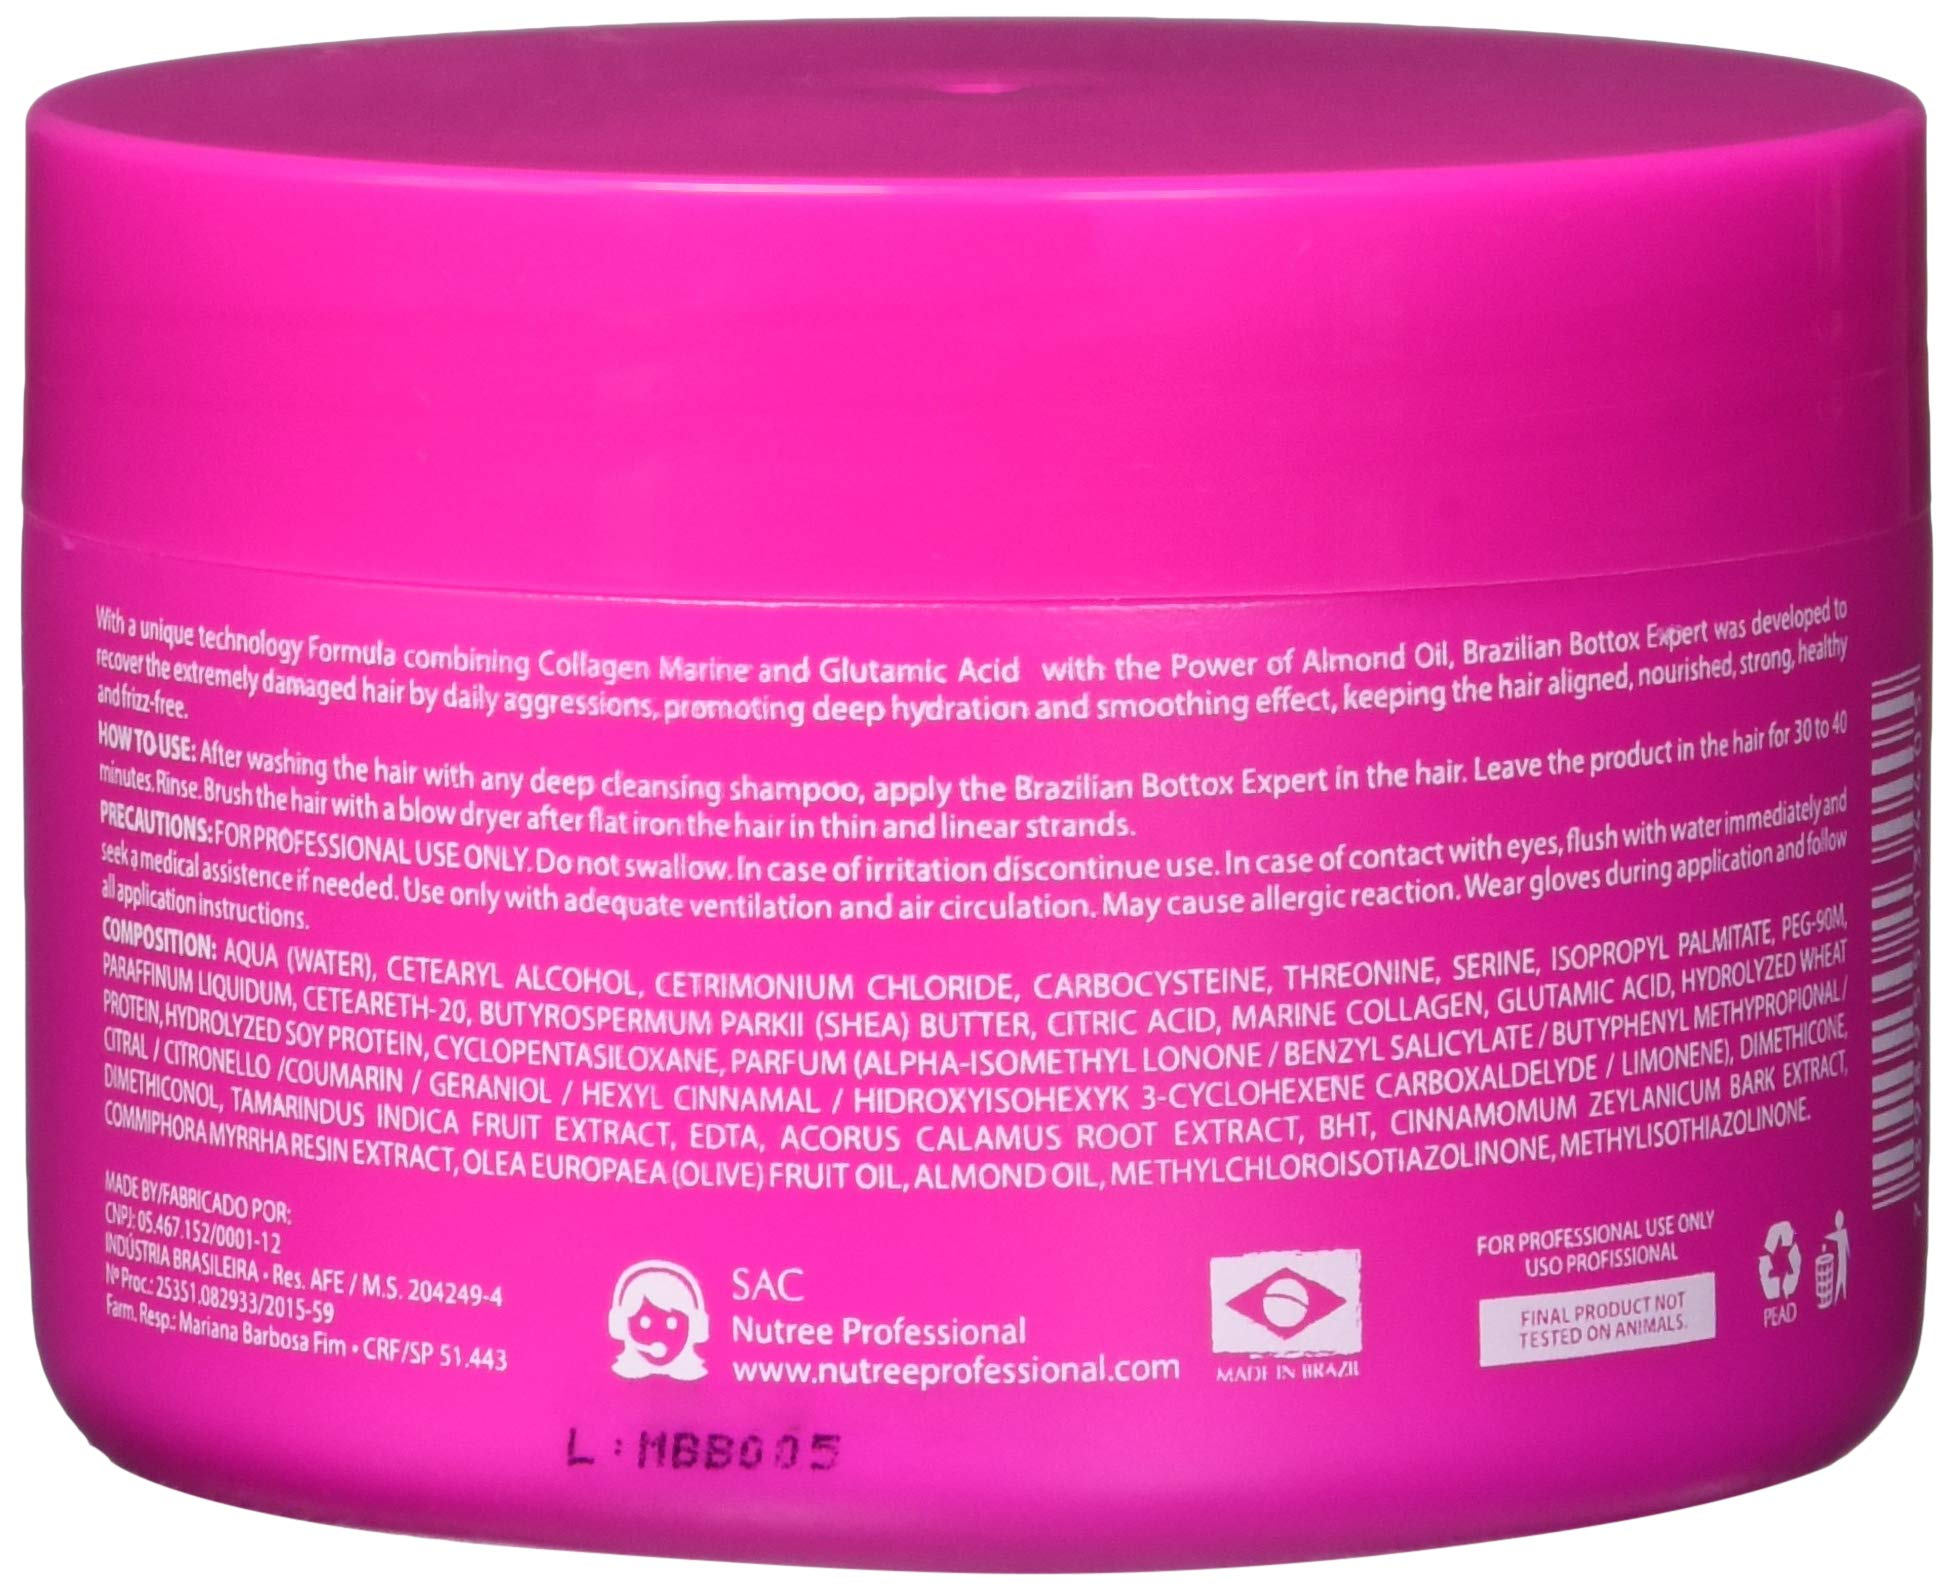 Brazilian Hair Bottox Expert Thermal Mask 8.8 oz - Contains Marine Collagen and Almond Oil - Formaldehyde-Free - Repairs the Hair Elasticity and Flexibility, Softens, Moisturizers, Adds Shine by Nutree Professional (Image #2)